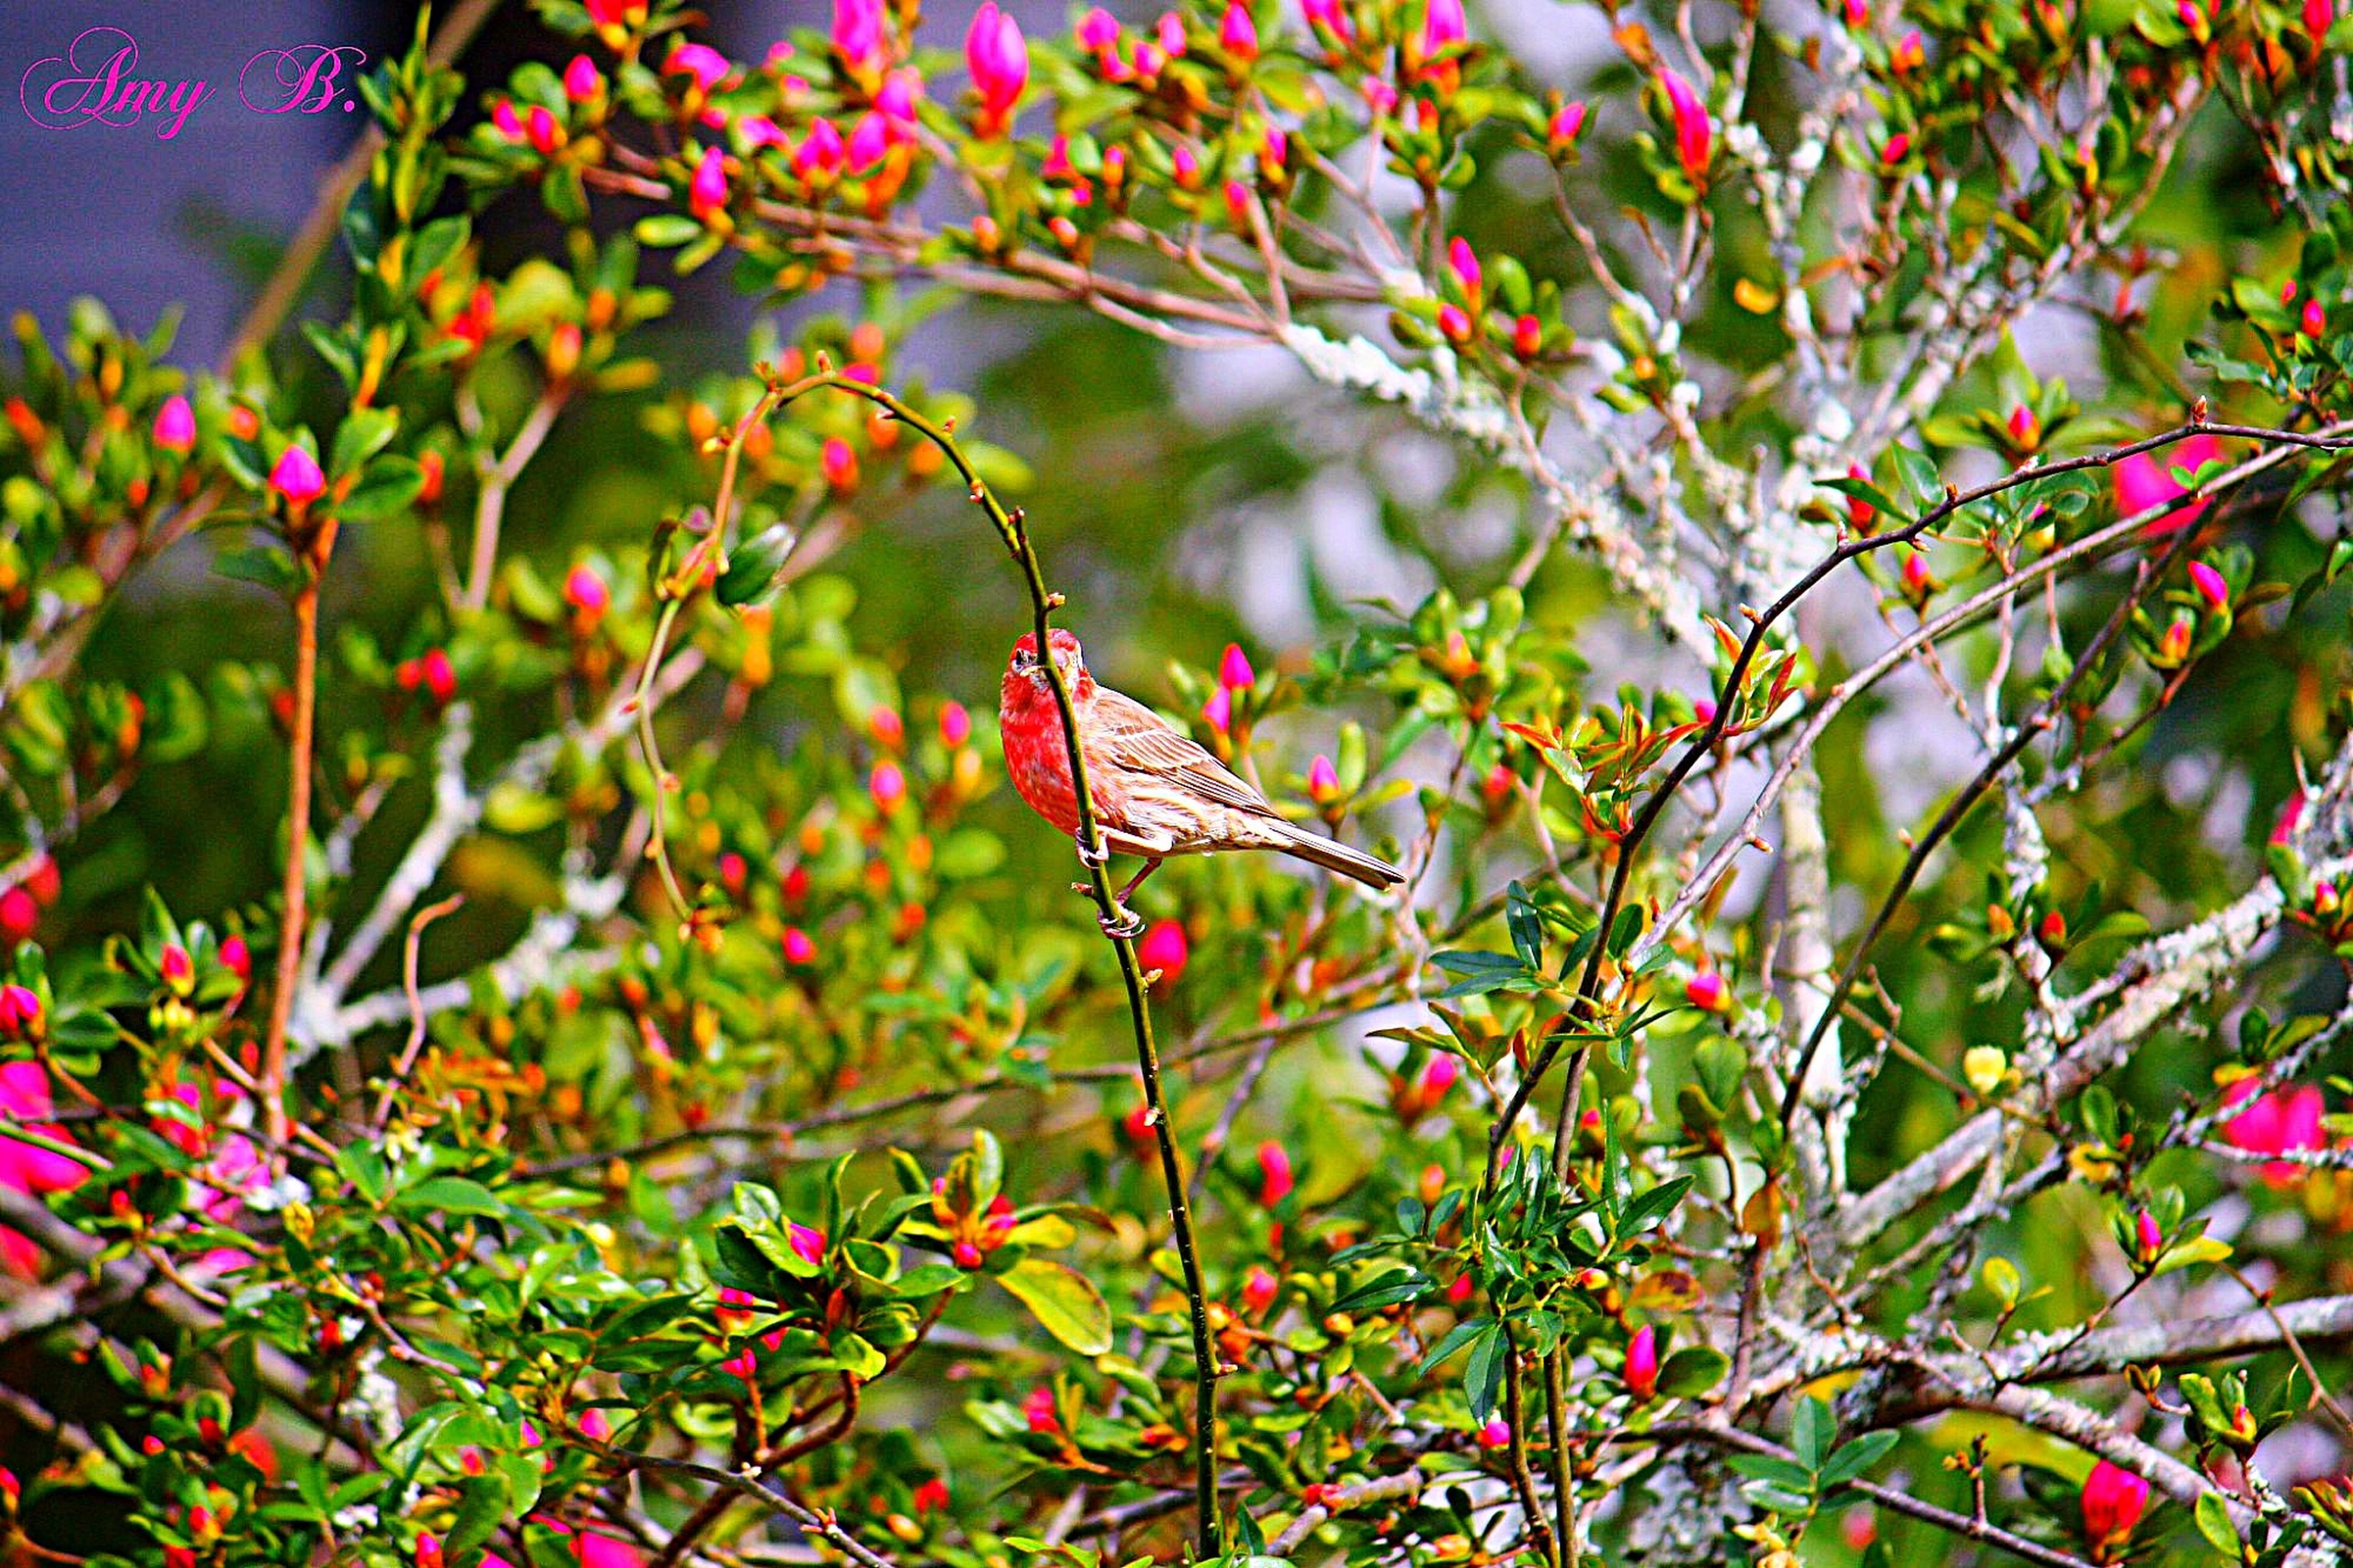 growth, branch, leaf, plant, red, flower, nature, freshness, beauty in nature, tree, focus on foreground, close-up, pink color, twig, day, outdoors, green color, stem, no people, fragility